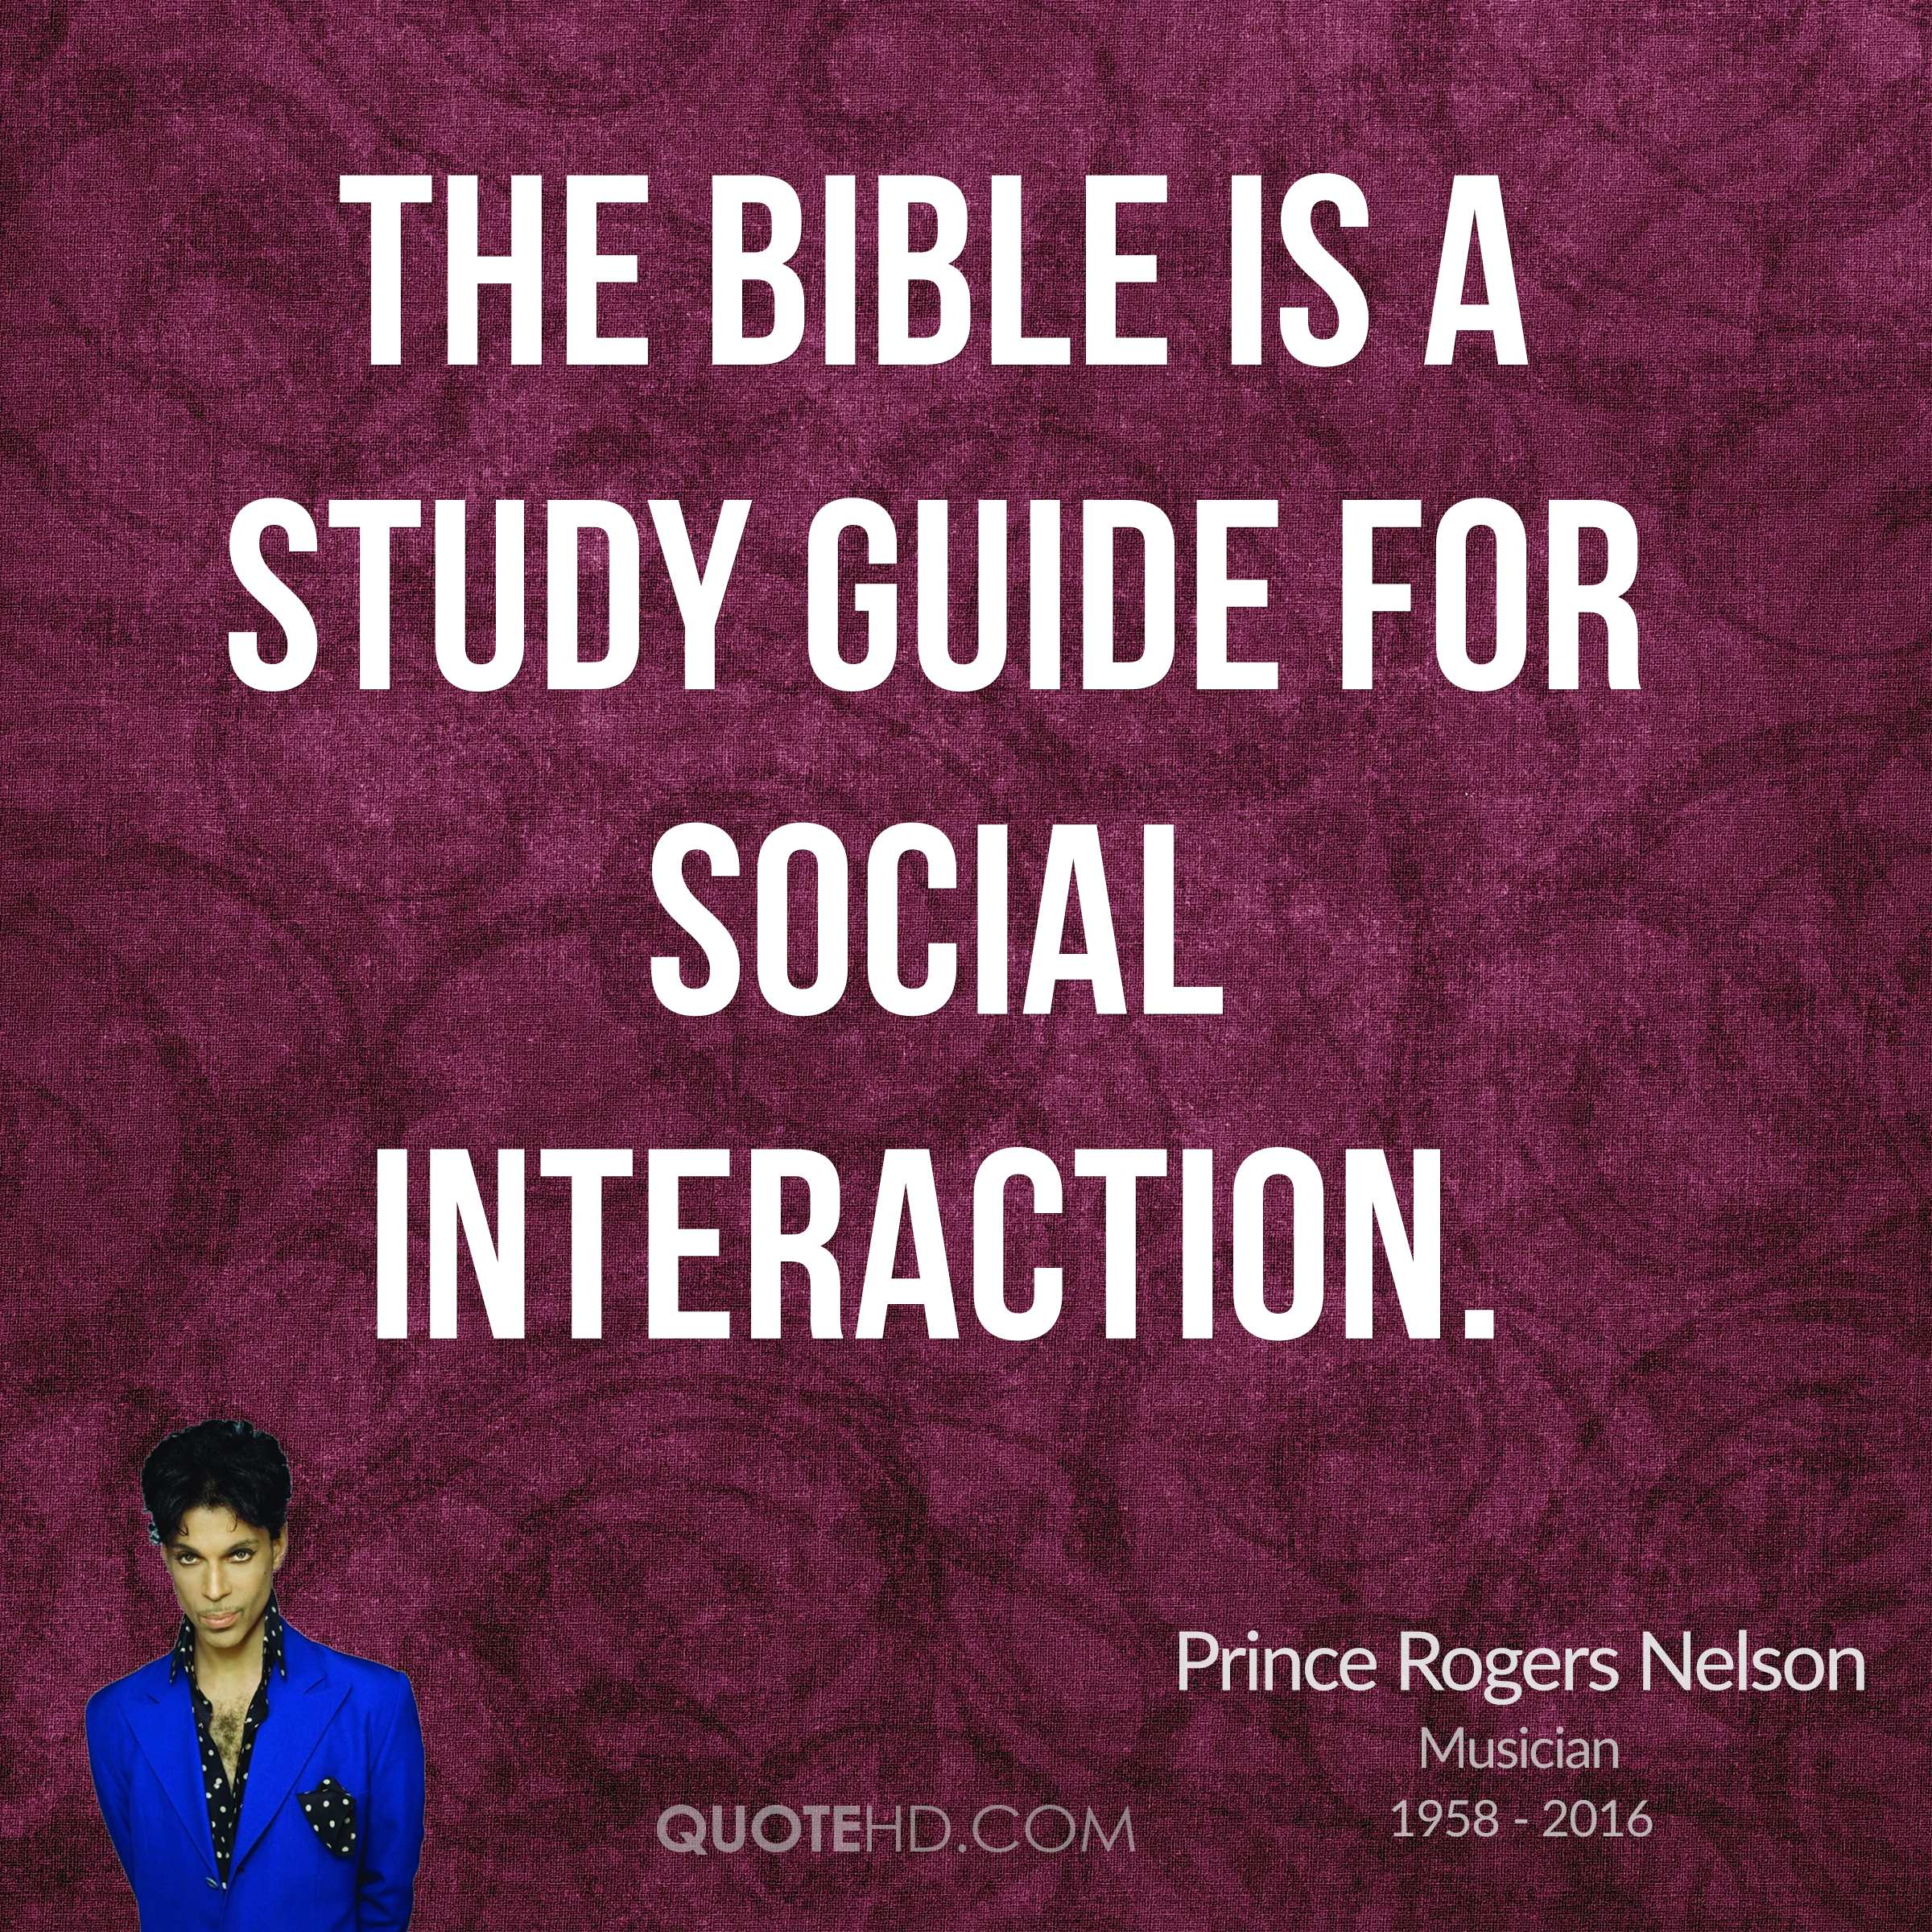 The Bible is a study guide for social interaction.